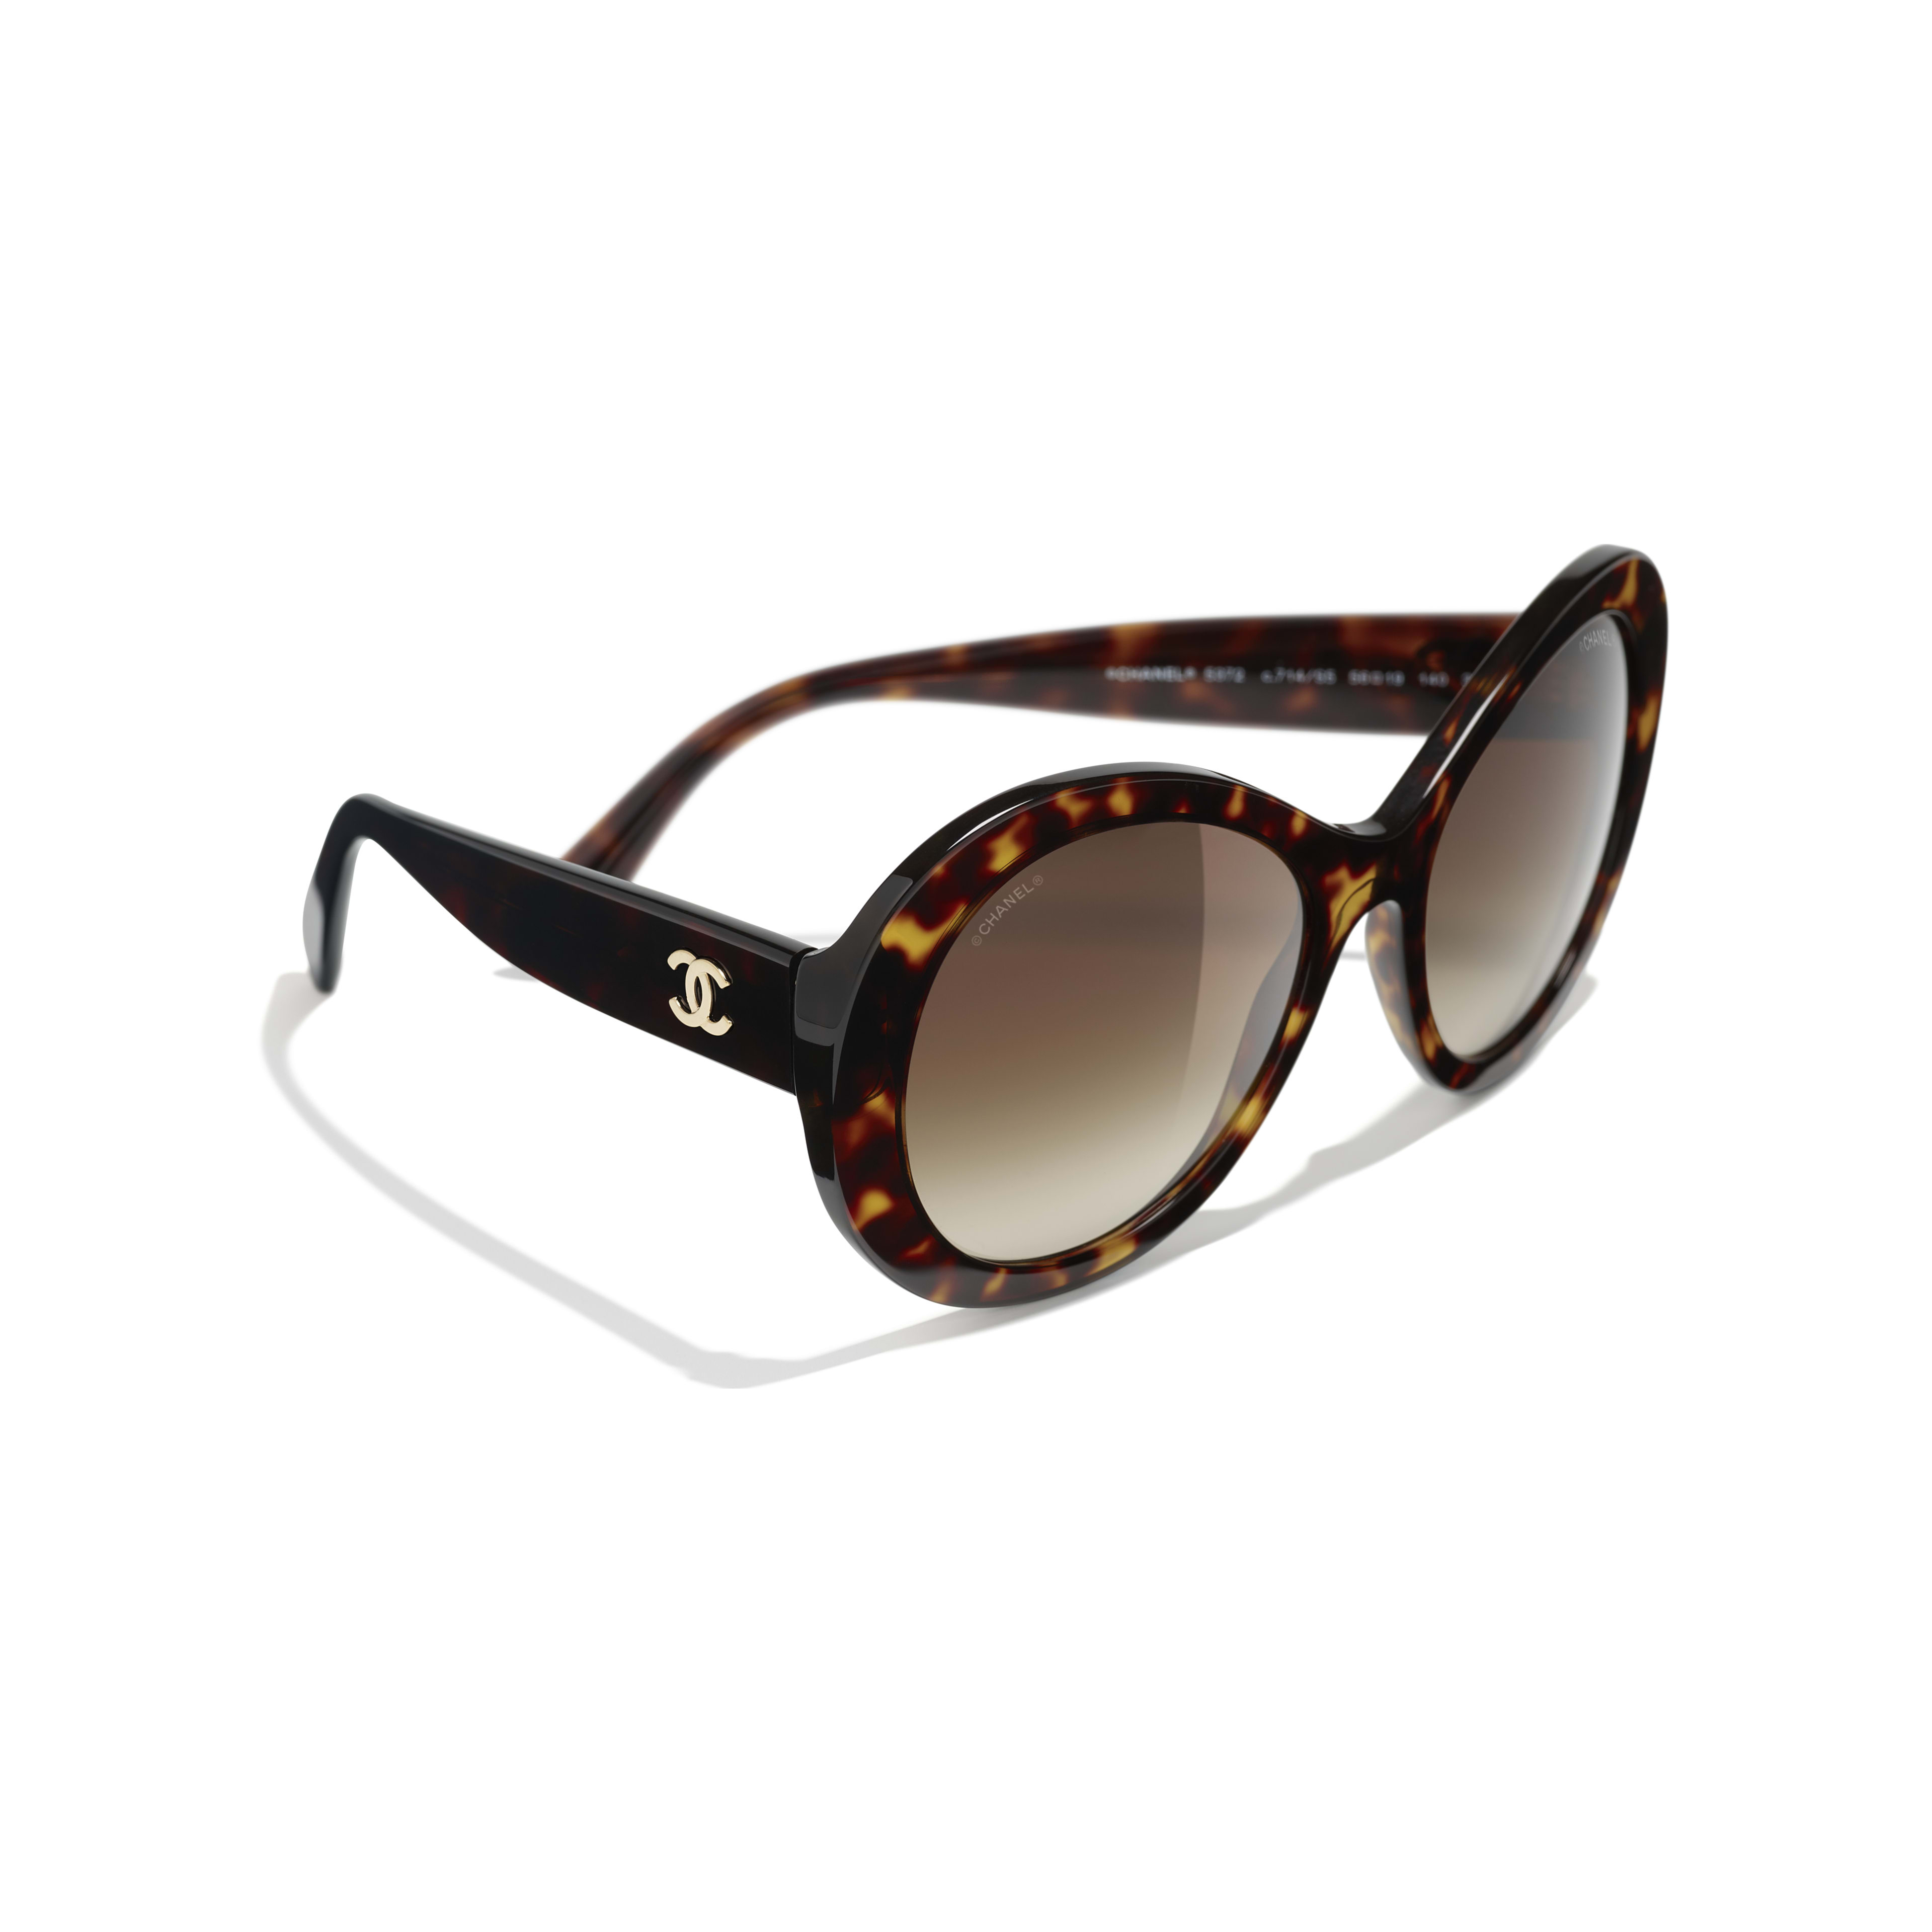 Oval Sunglasses - Dark Tortoise - Acetate - Extra view - see full sized version